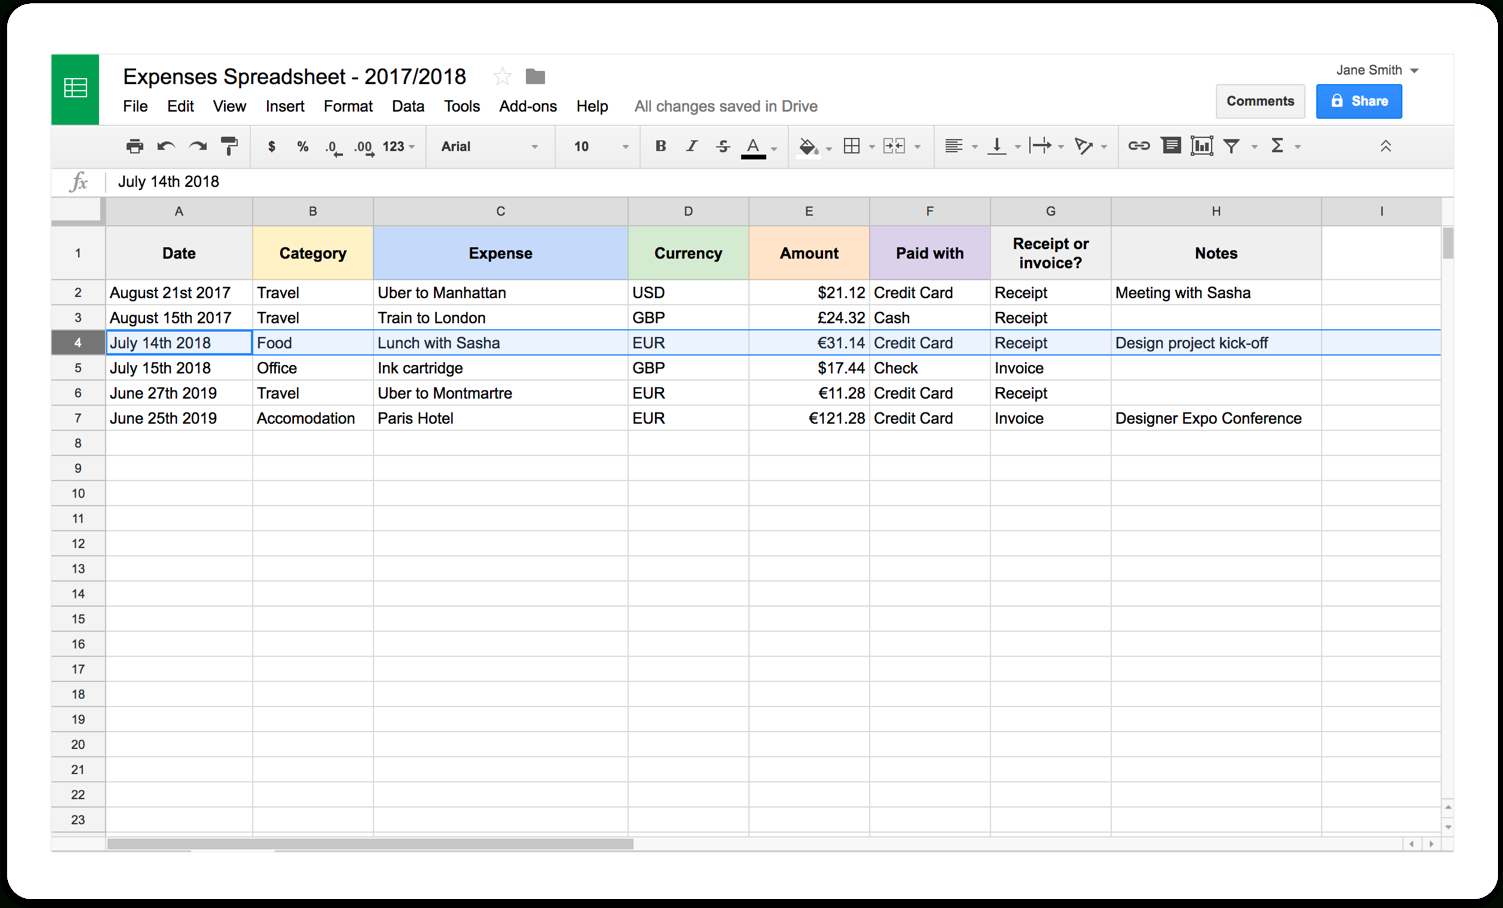 Employee Cost Spreadsheet Pertaining To Selfemployed